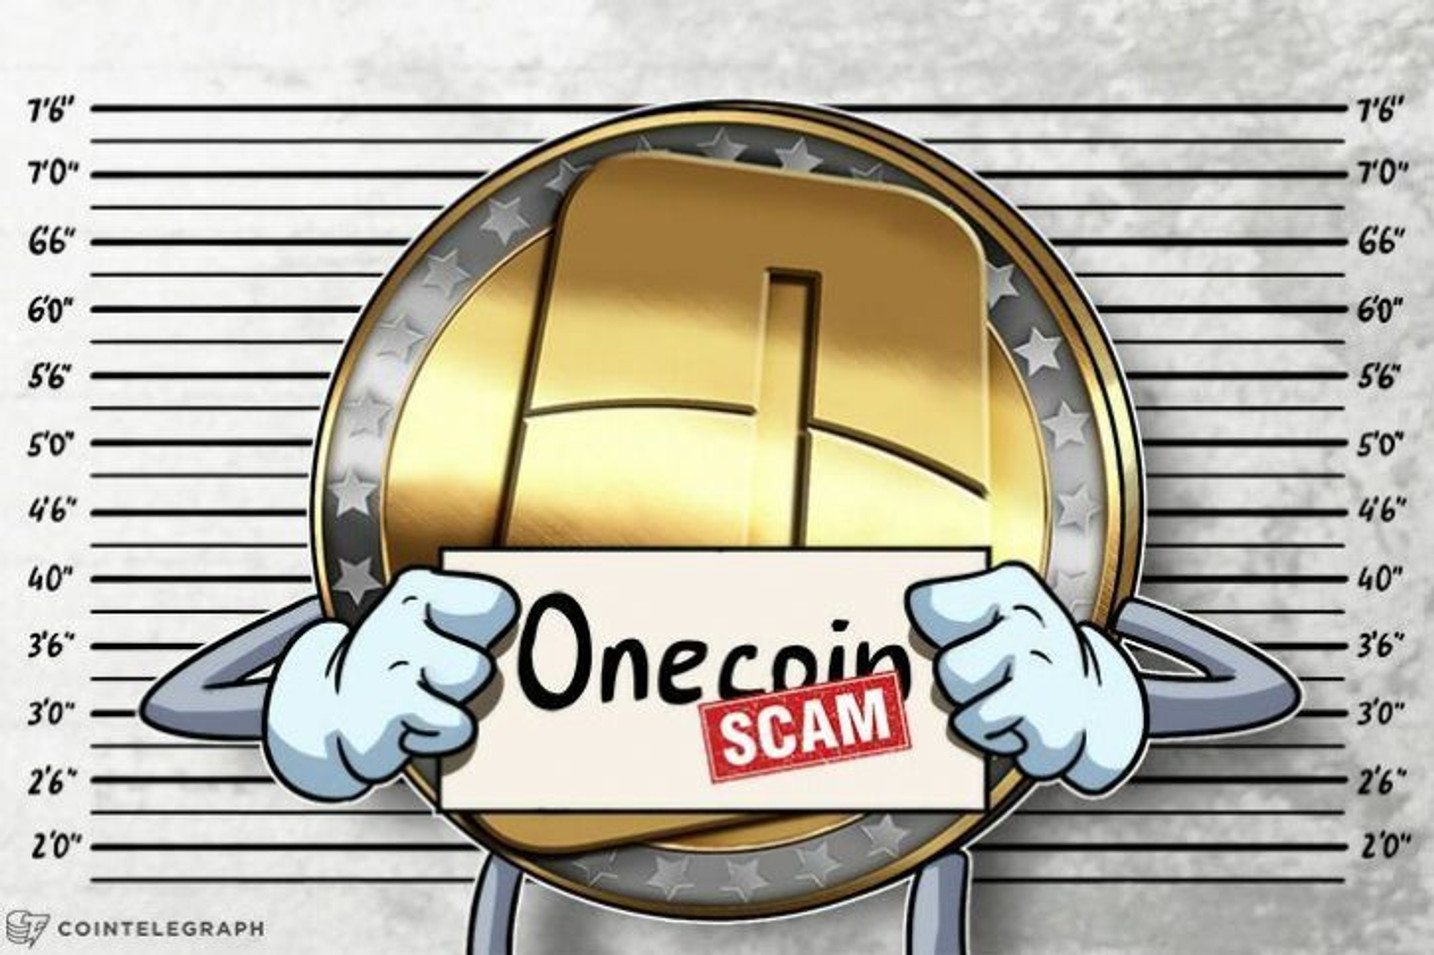 OneCoin IS Much Ponzi: Indian Police Chief Confirms 'Clear Ponzi Scheme'